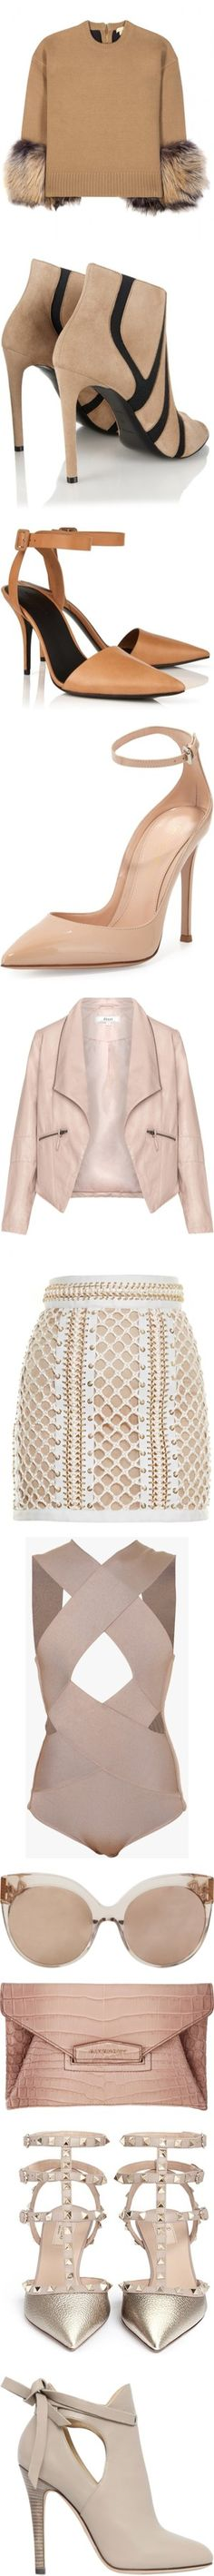 NUDE&CLASS by fanny-afx on Polyvore featuring women's fashion, tops, sweaters, shirts, beige, beige sweater, miu miu sweater, beige top, wool cashmere sweater and cashmere sweater